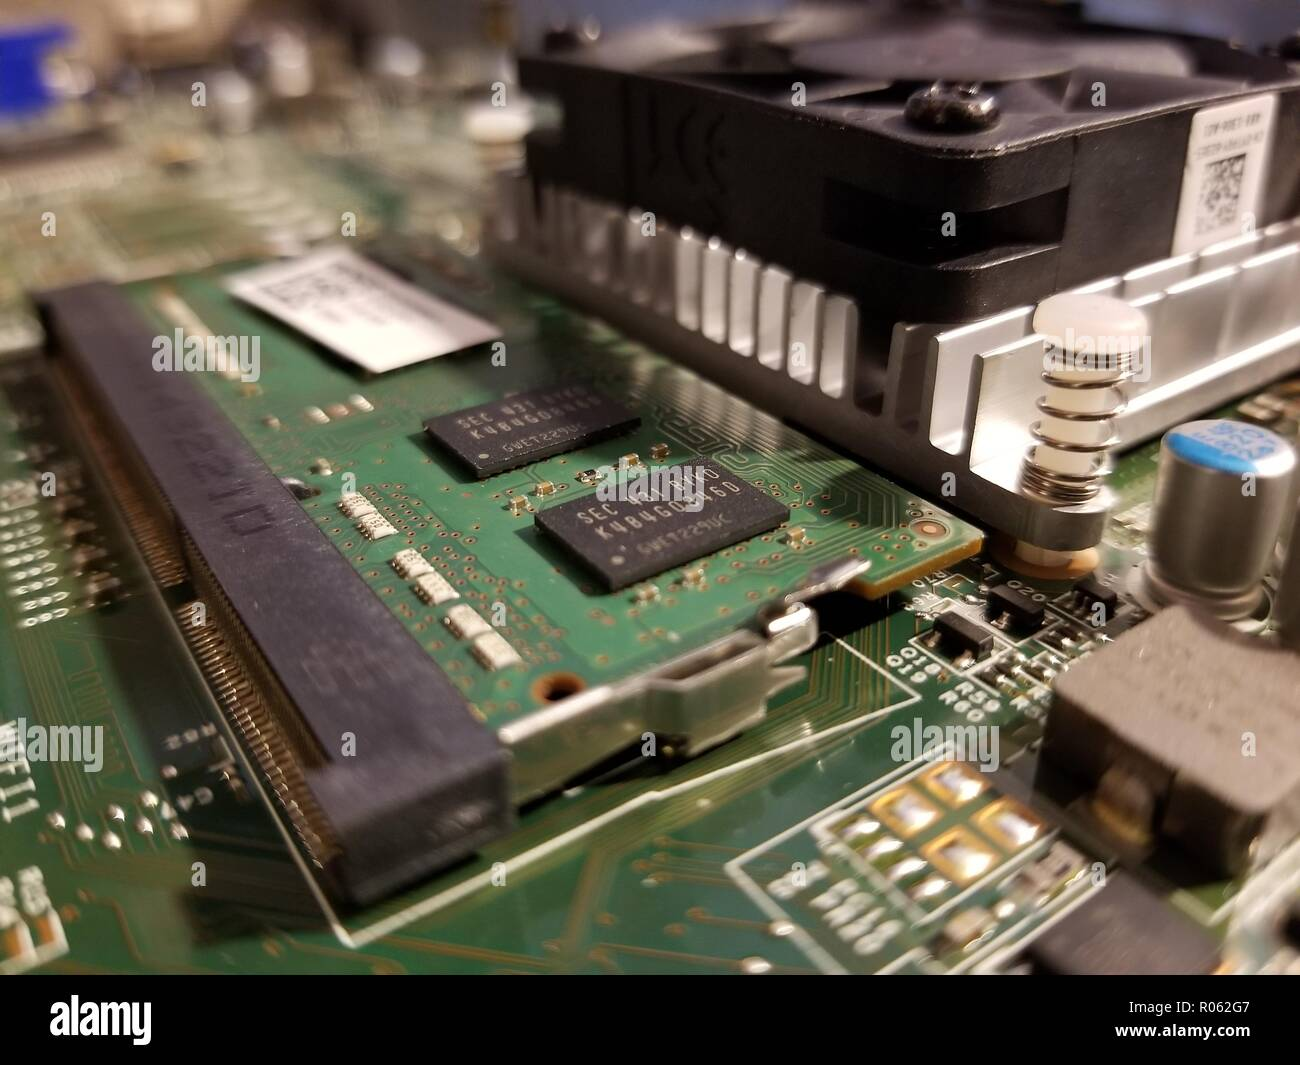 Ram Board Stock Photos Images Alamy Computer Circuit Main Royalty Free Photography Image On Dell Inspiron 3646 The Mother